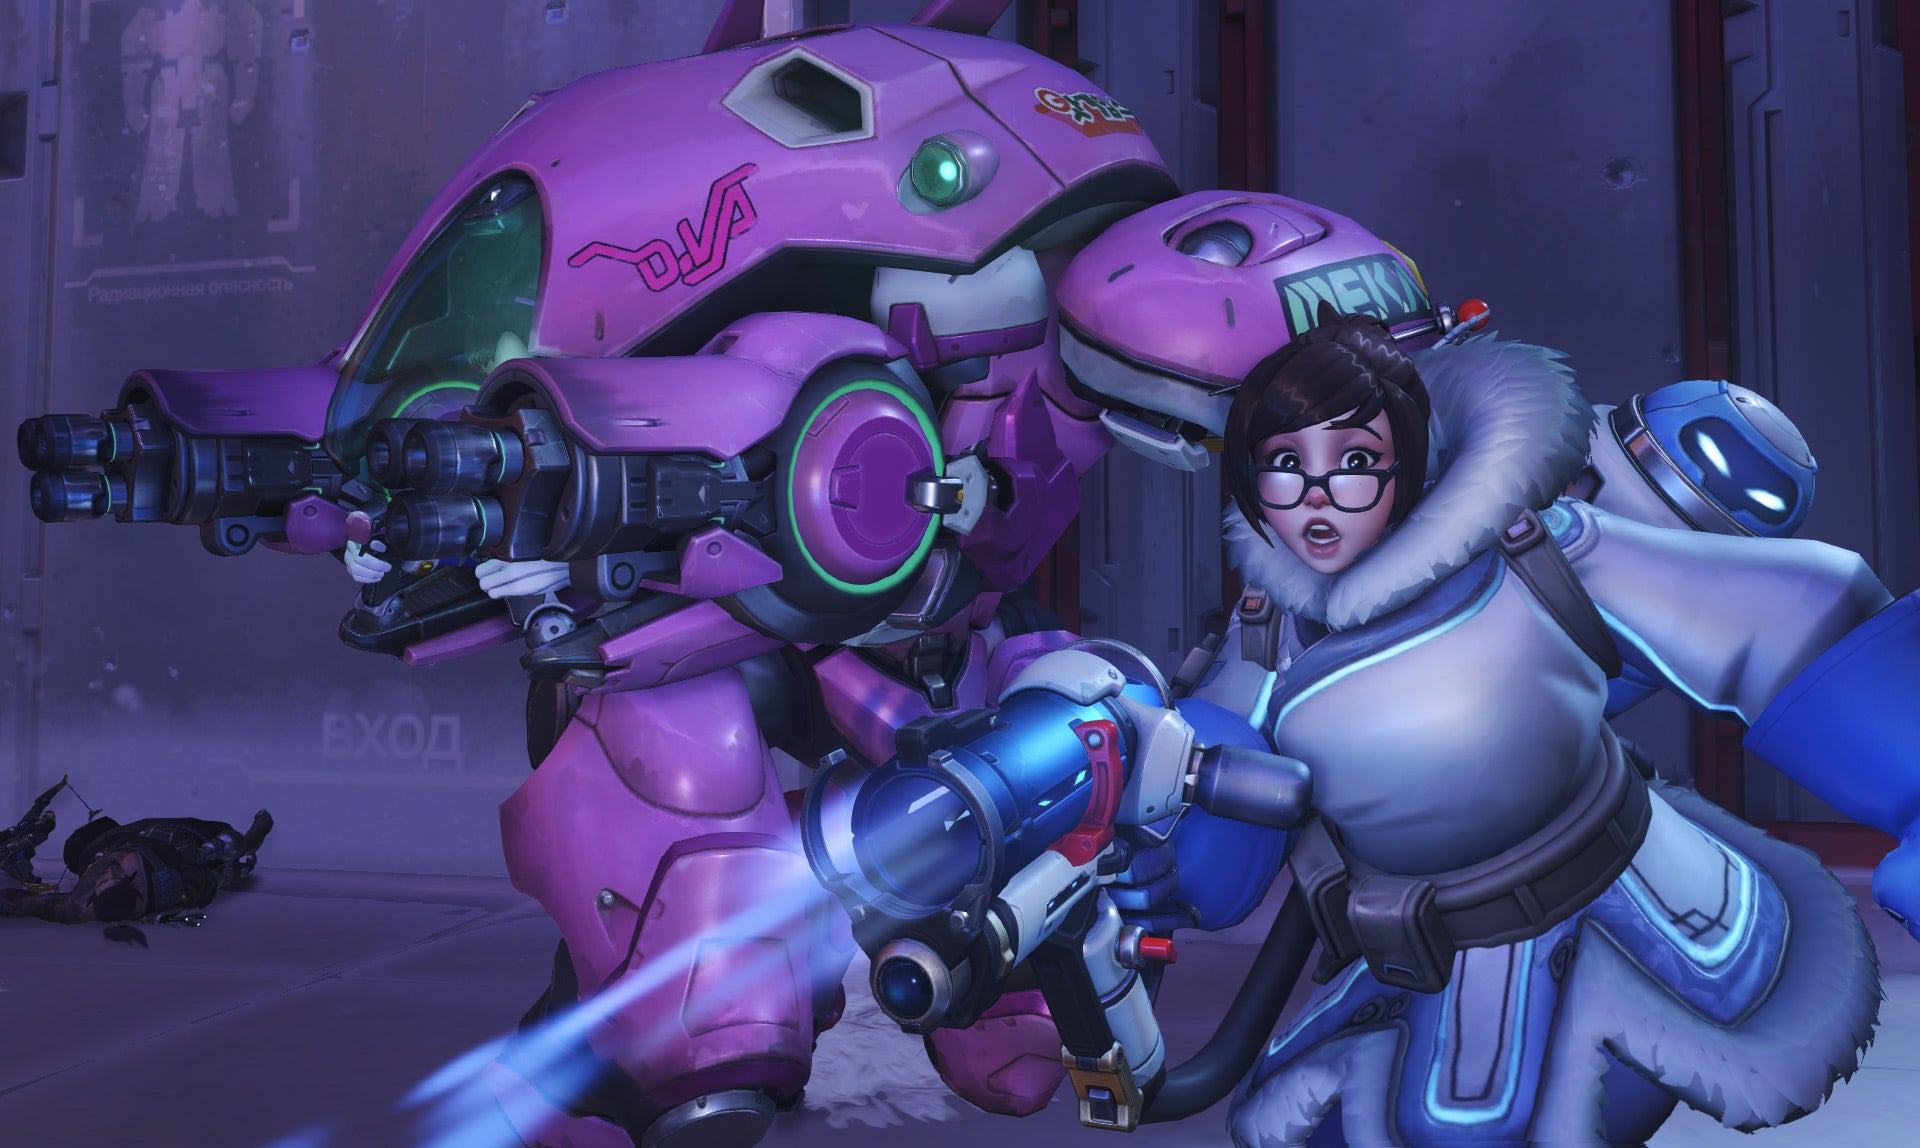 Blizzard Says They Will Punish Overwatch Players Who Use Mei's Ice Wall Cheat